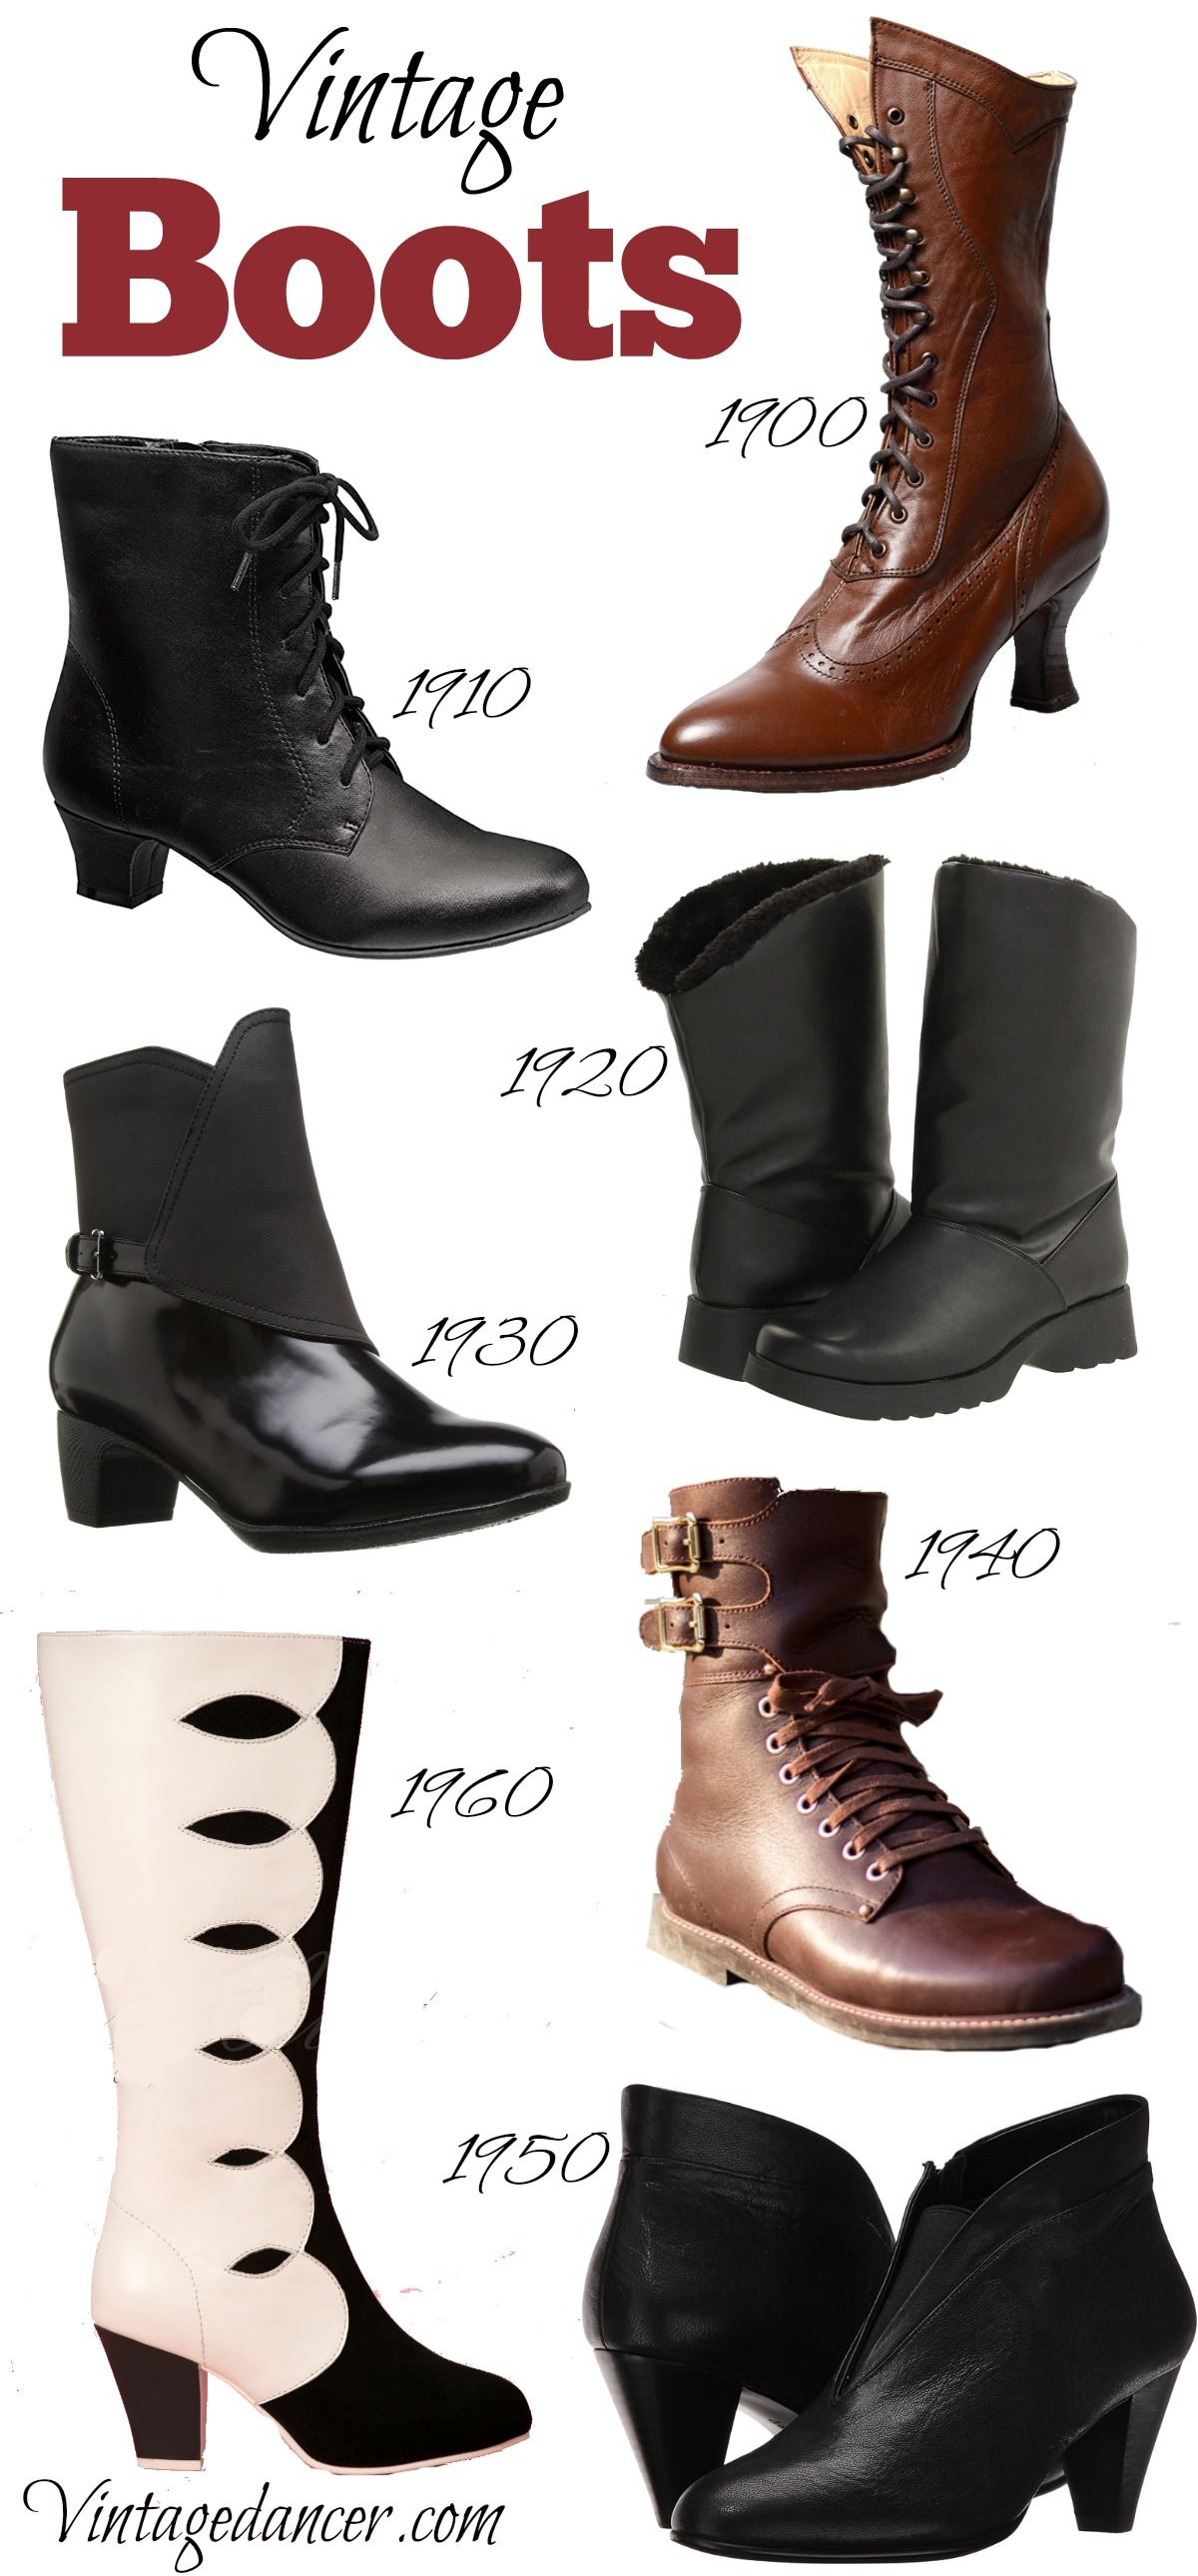 Vintage Style Boots- New Boots with a Retro Past e96c8ada0228